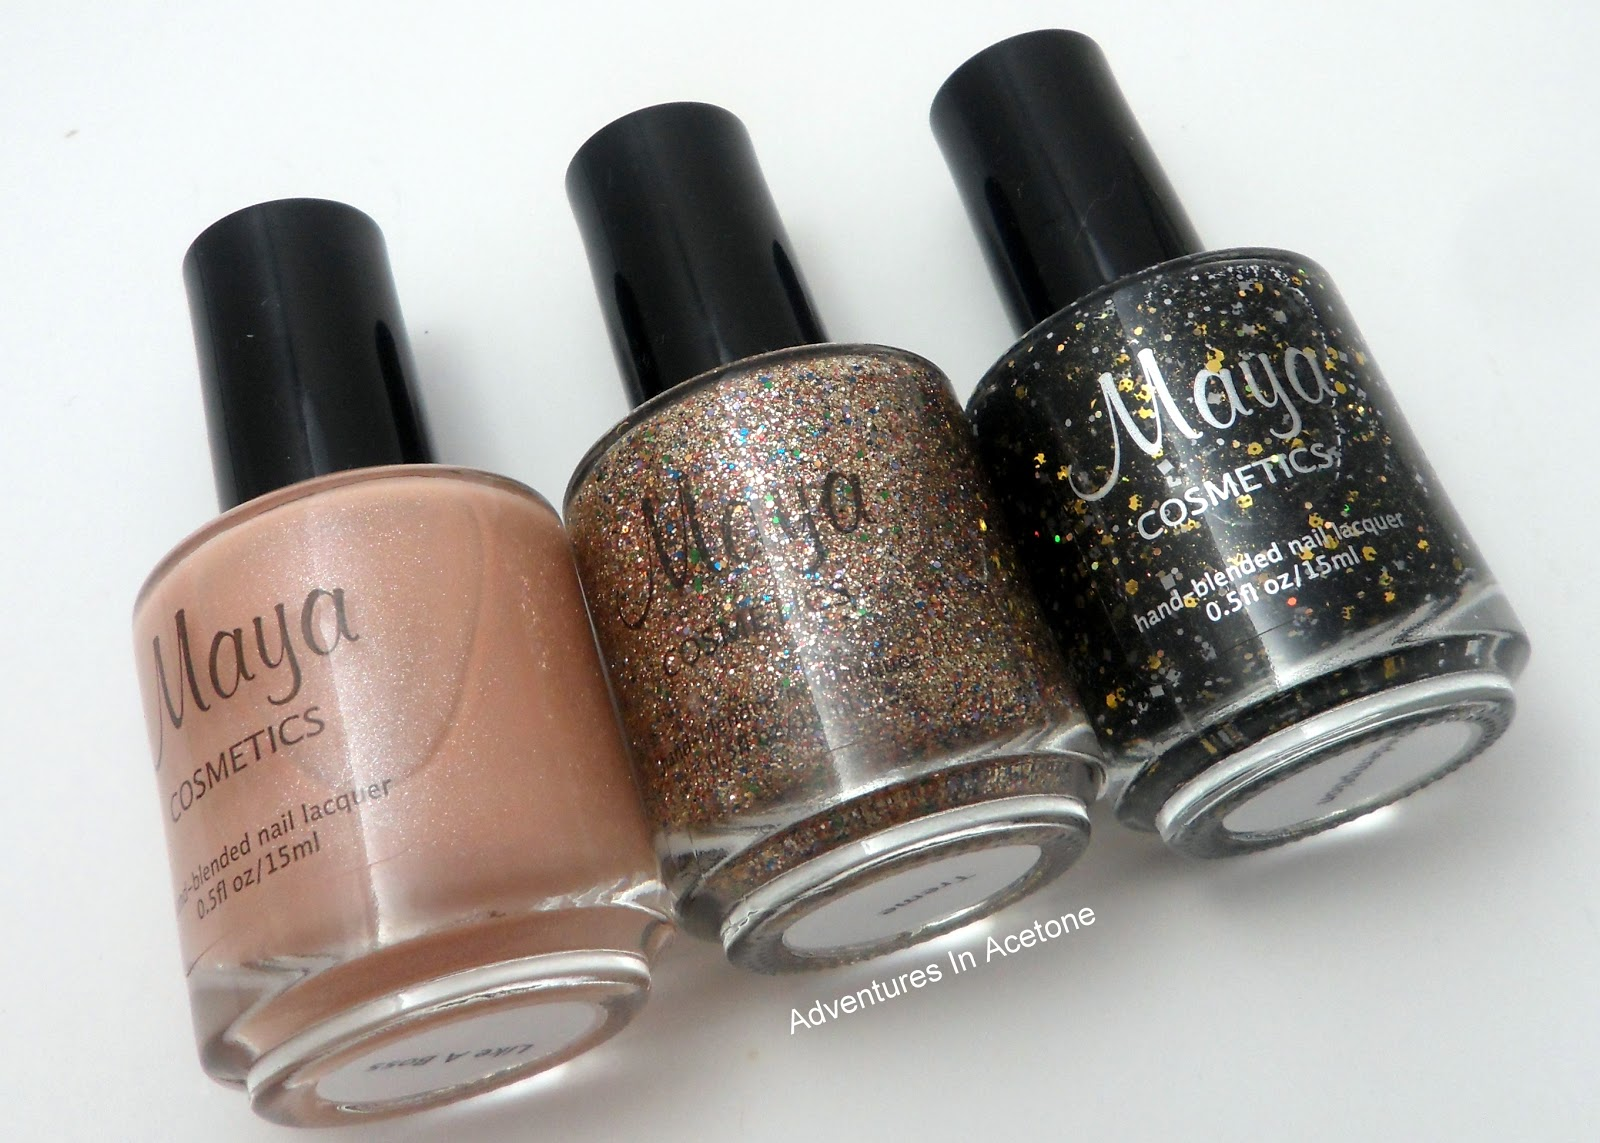 New Maya Cosmetics Polish Swatches! - Adventures In Acetone